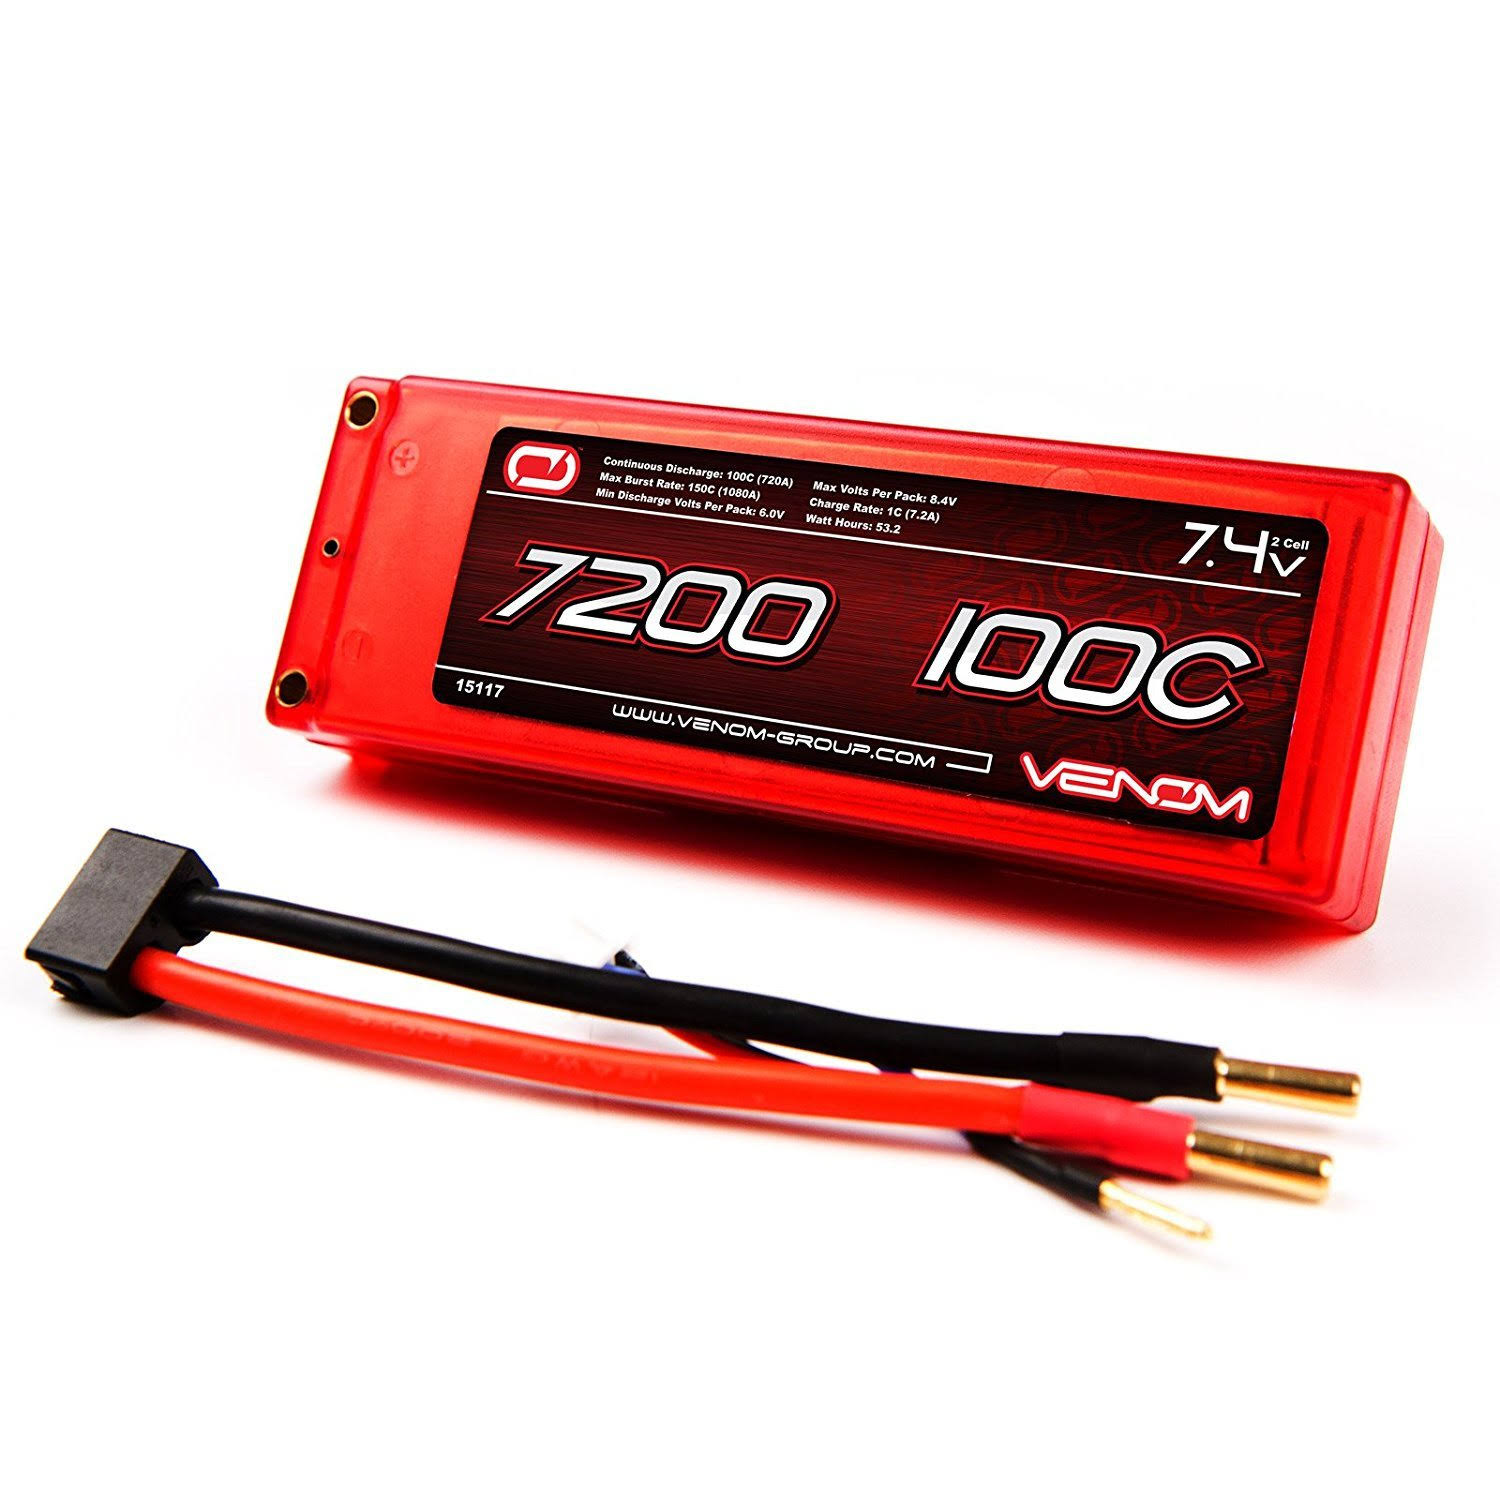 Venom Lipo Battery - 7200mah, 100C, 7.4V